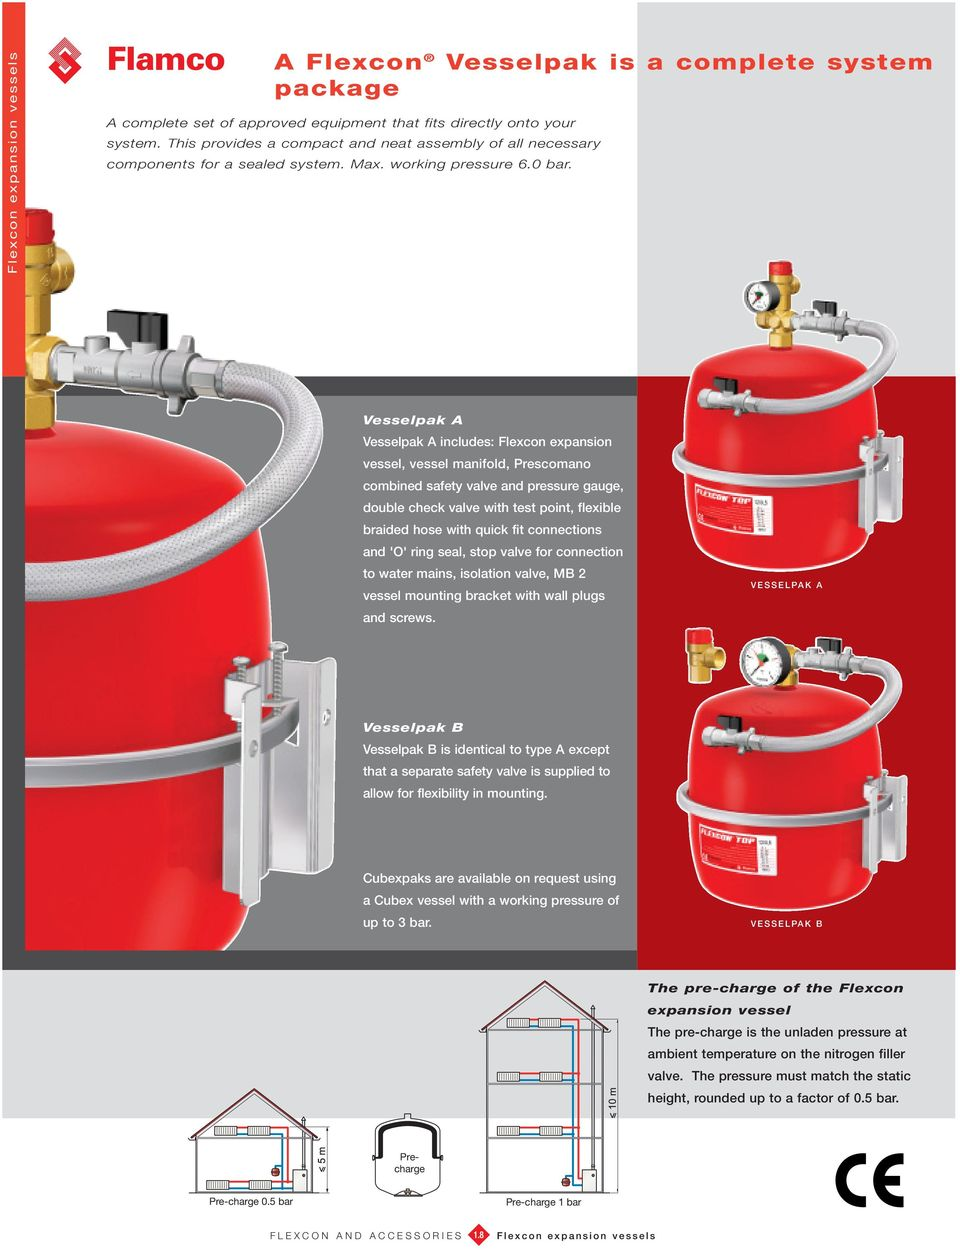 Vesselpak A Vesselpak A includes: Flexcon expansion vessel, vessel manifold, Prescomano combined safety valve and pressure gauge, double check valve with test point, flexible braided hose with quick